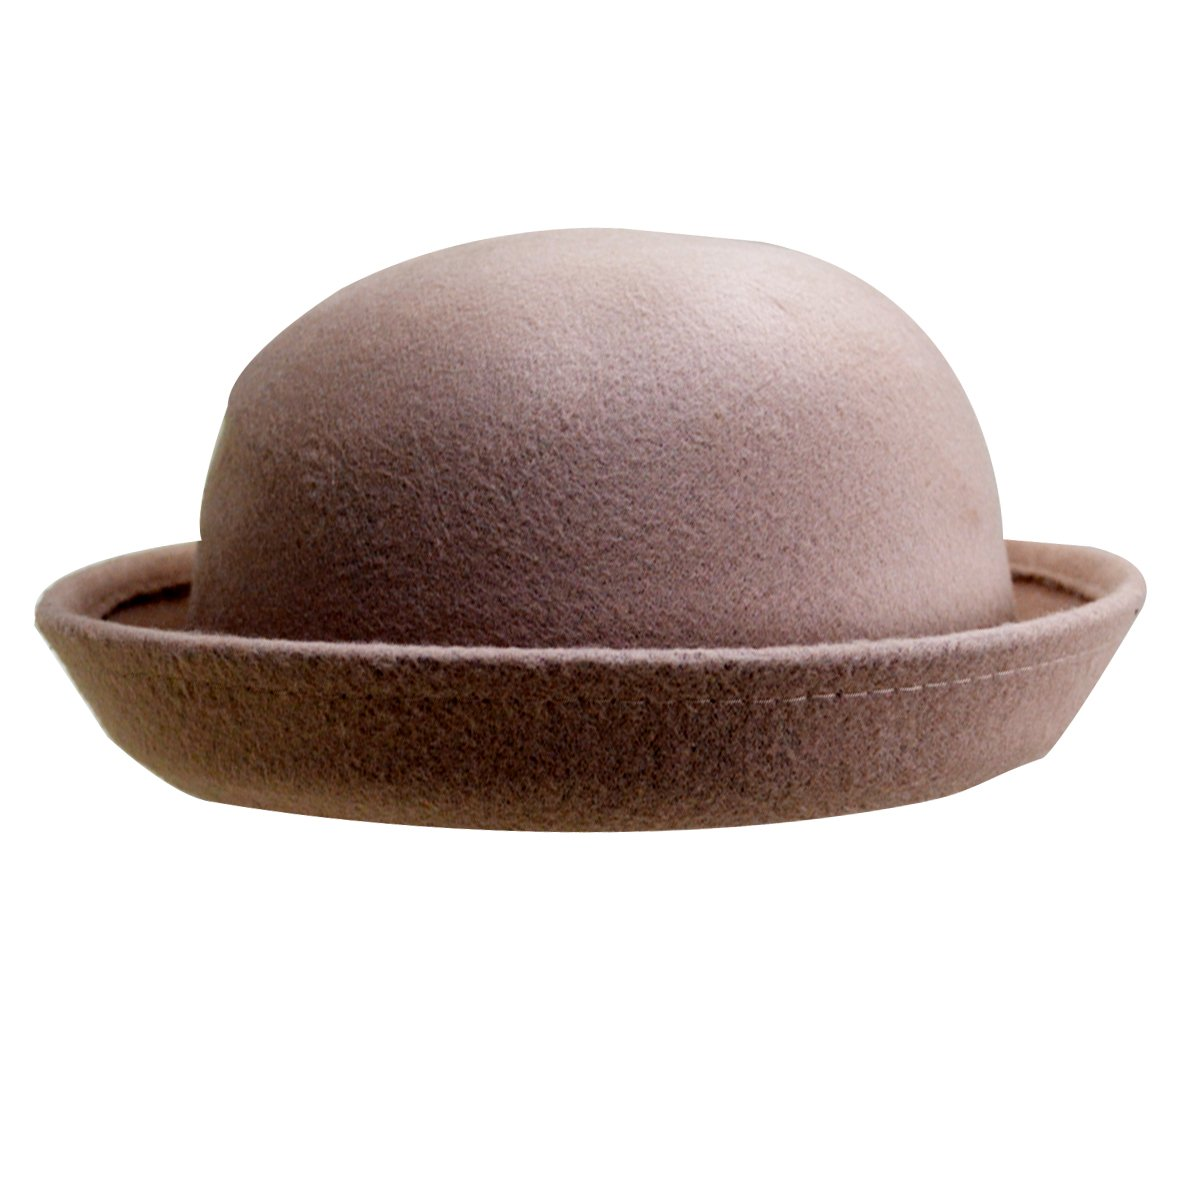 Editha Girls Roll-up Brim Woolen Fedora Fashion Dome Bowler Hat Spring Autumn Winter Casual Outdoor Travel Bowler Cap Light tan